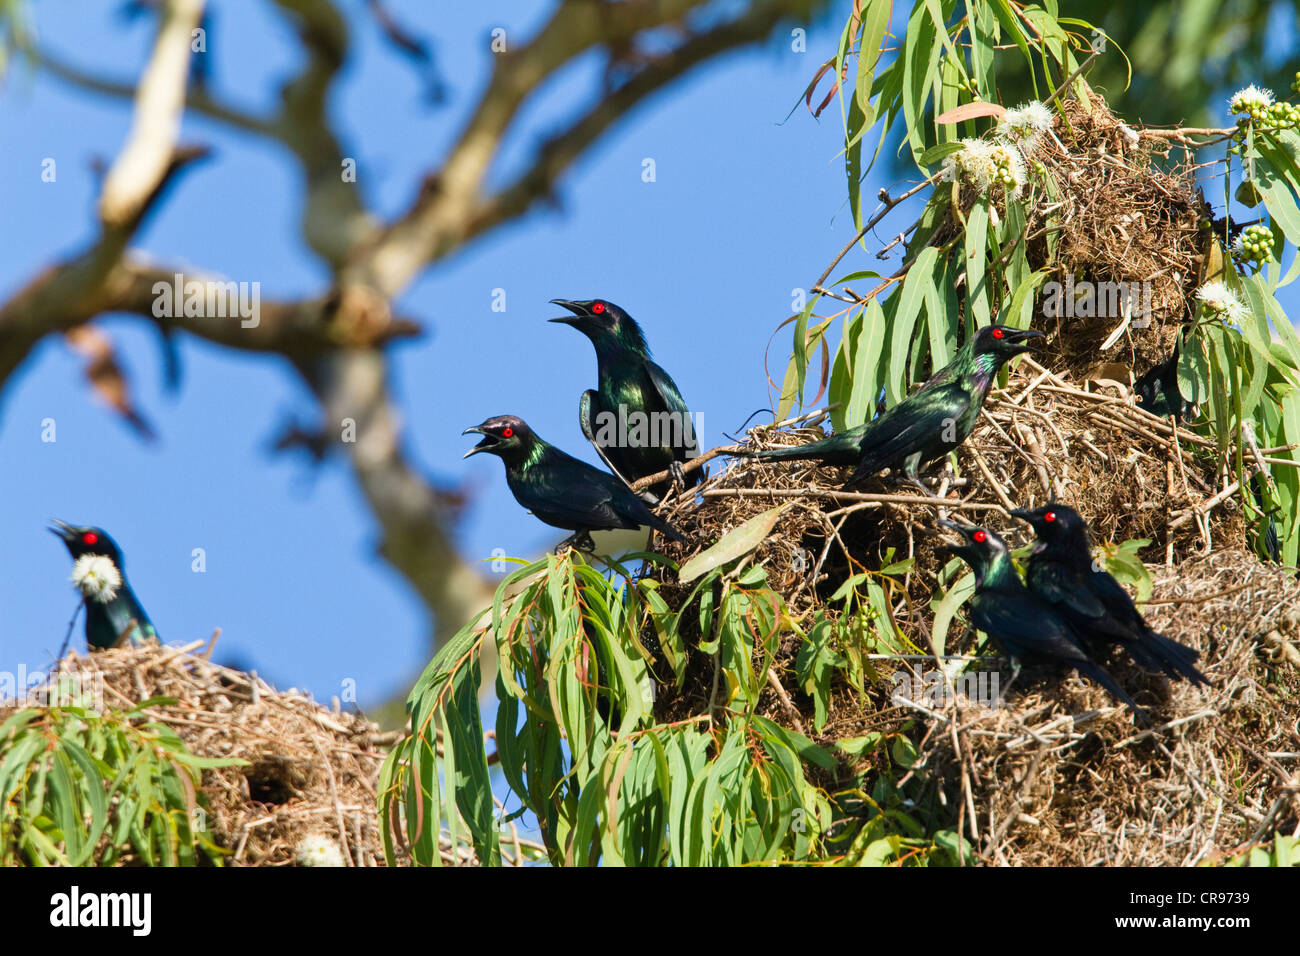 Shining Starlings (Aplonis metallica) in a breeding colony, Daintree National Park, northern Queensland, Australia - Stock Image